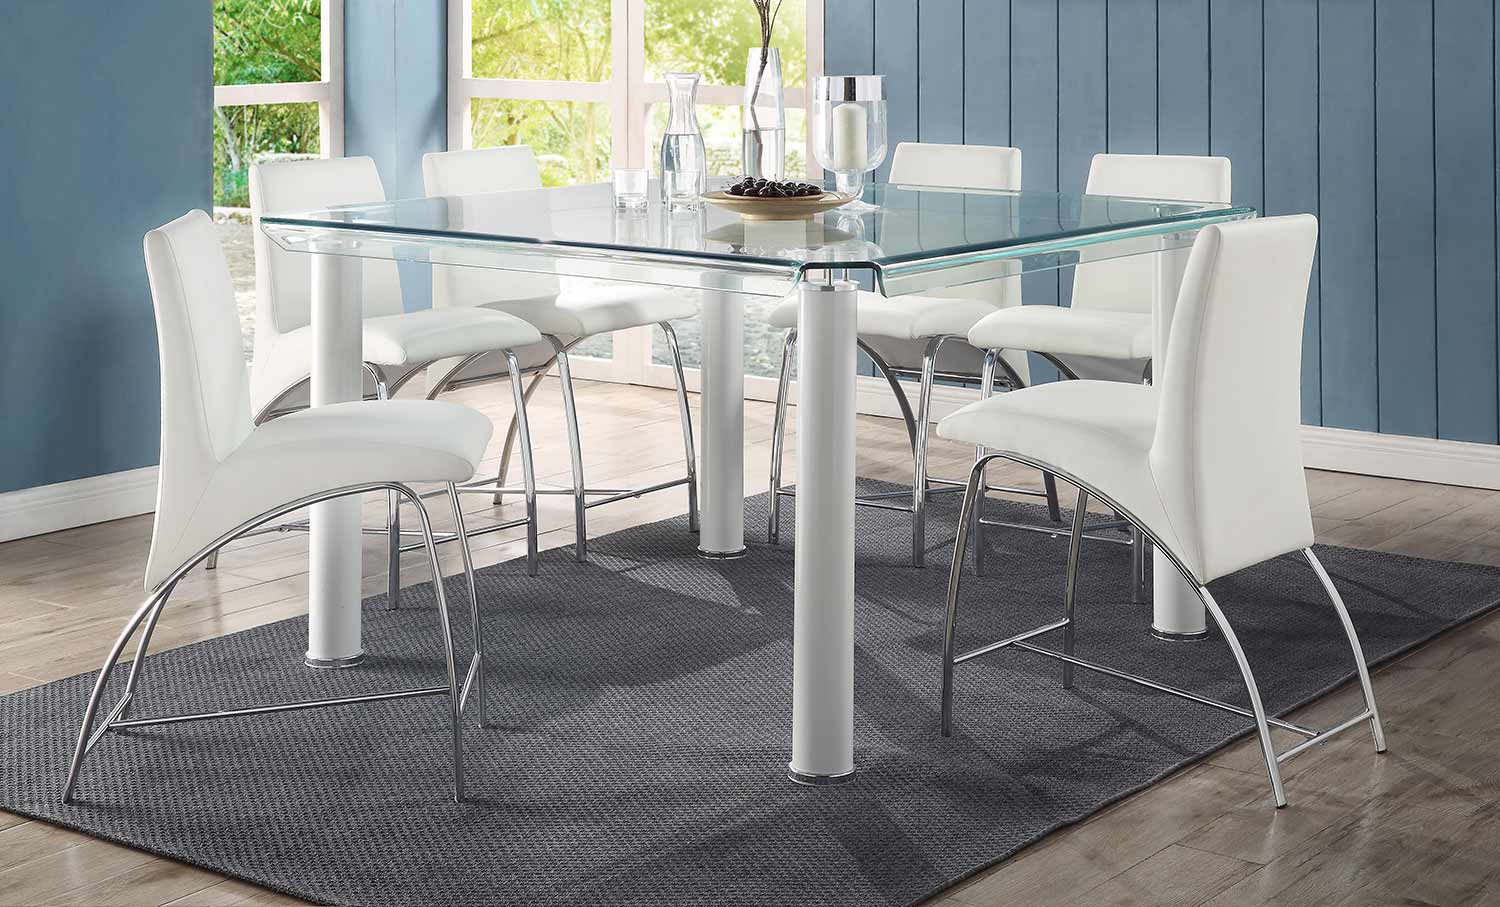 Acme Gordie Curved Metal Shape Counter Height Dining Set - White/Clear Glass/Chrome